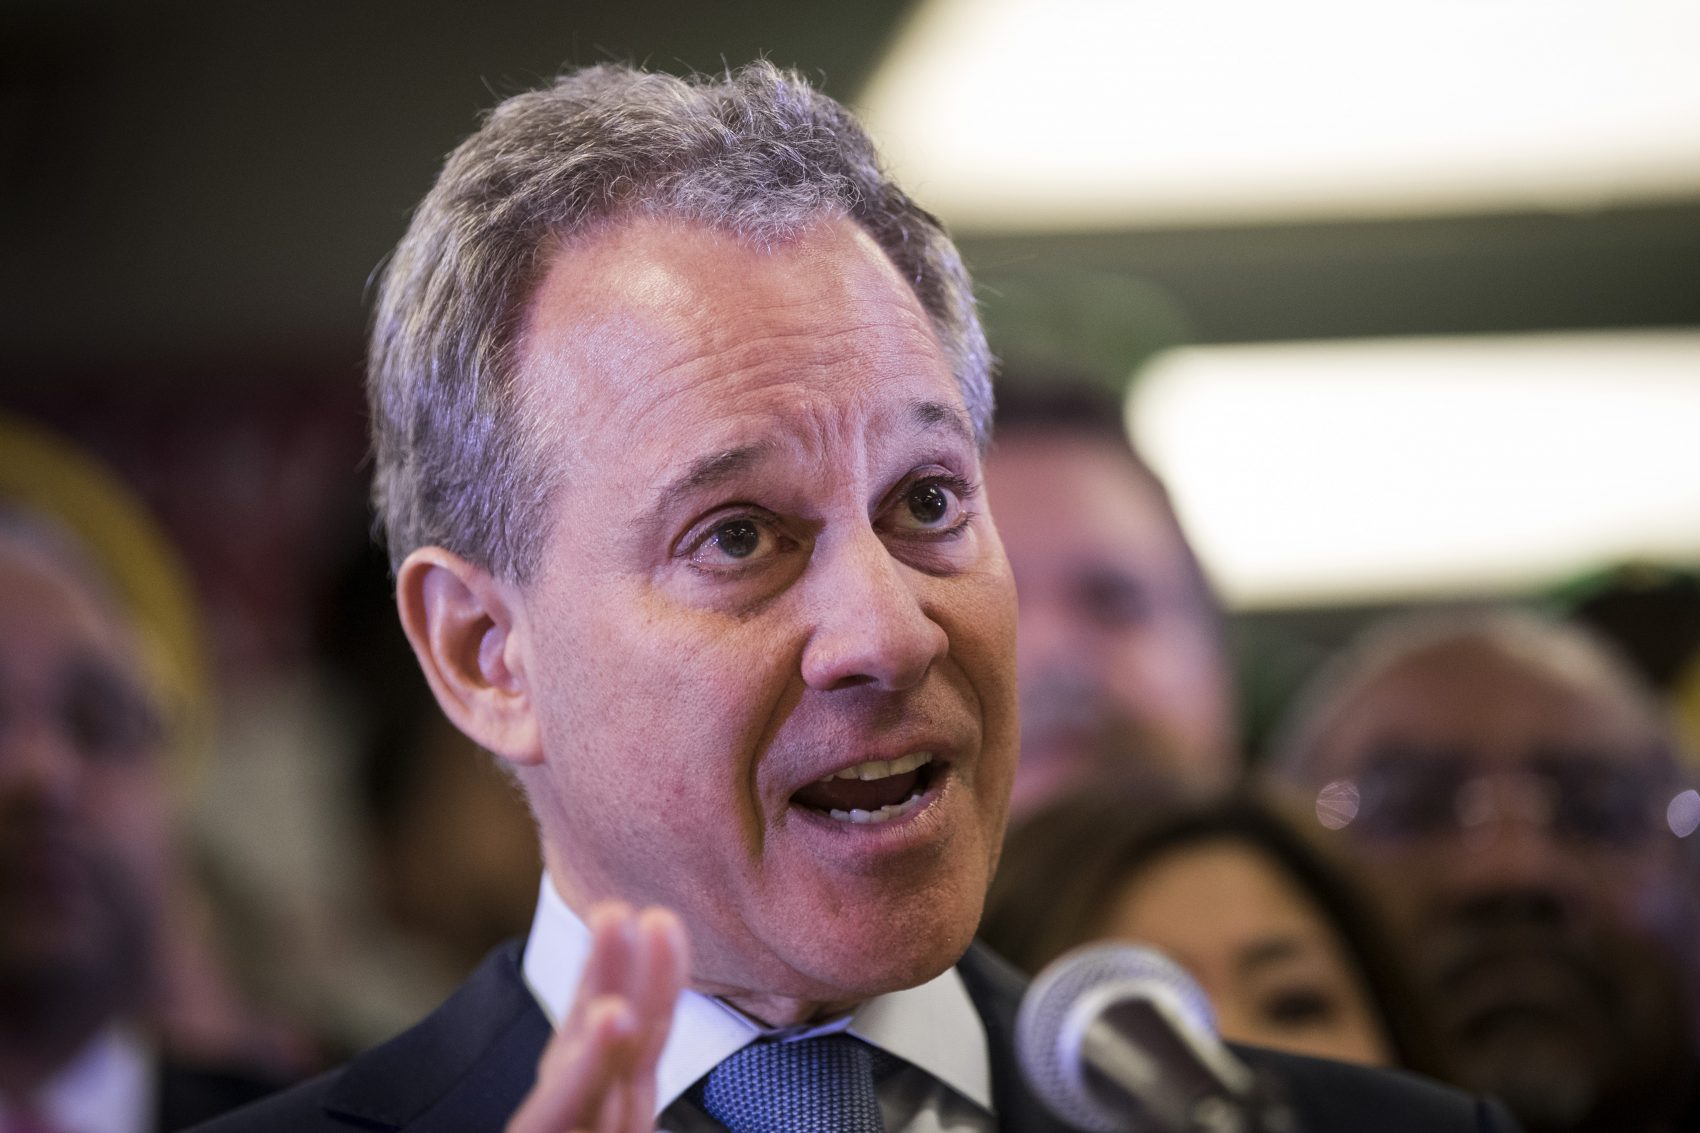 What's Next After N.Y. Attorney General's Resignation Amid Abuse Allegations